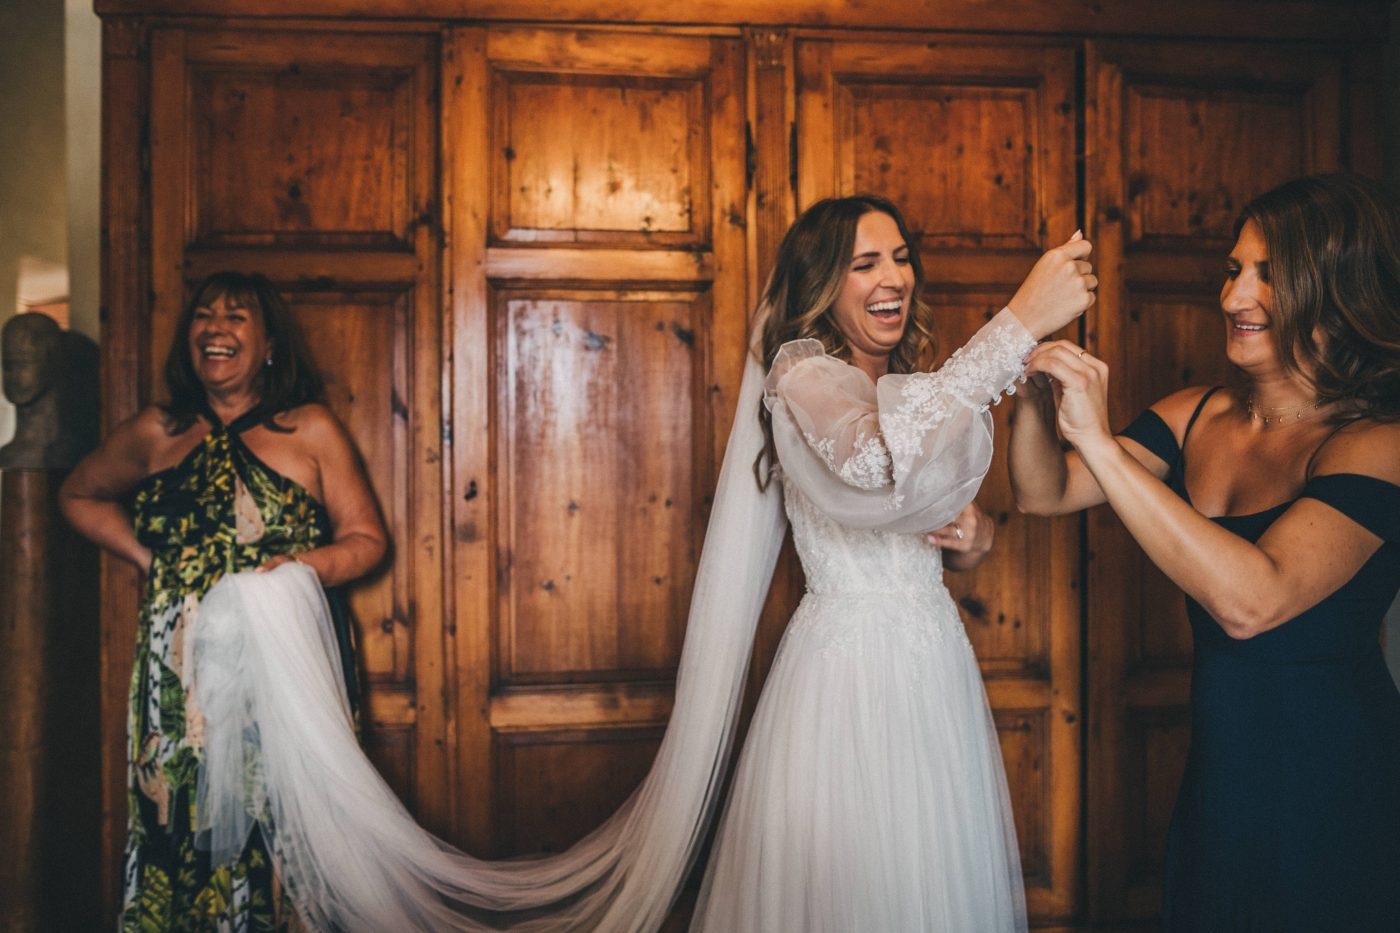 Wedding Photography by Claire Penn Photography